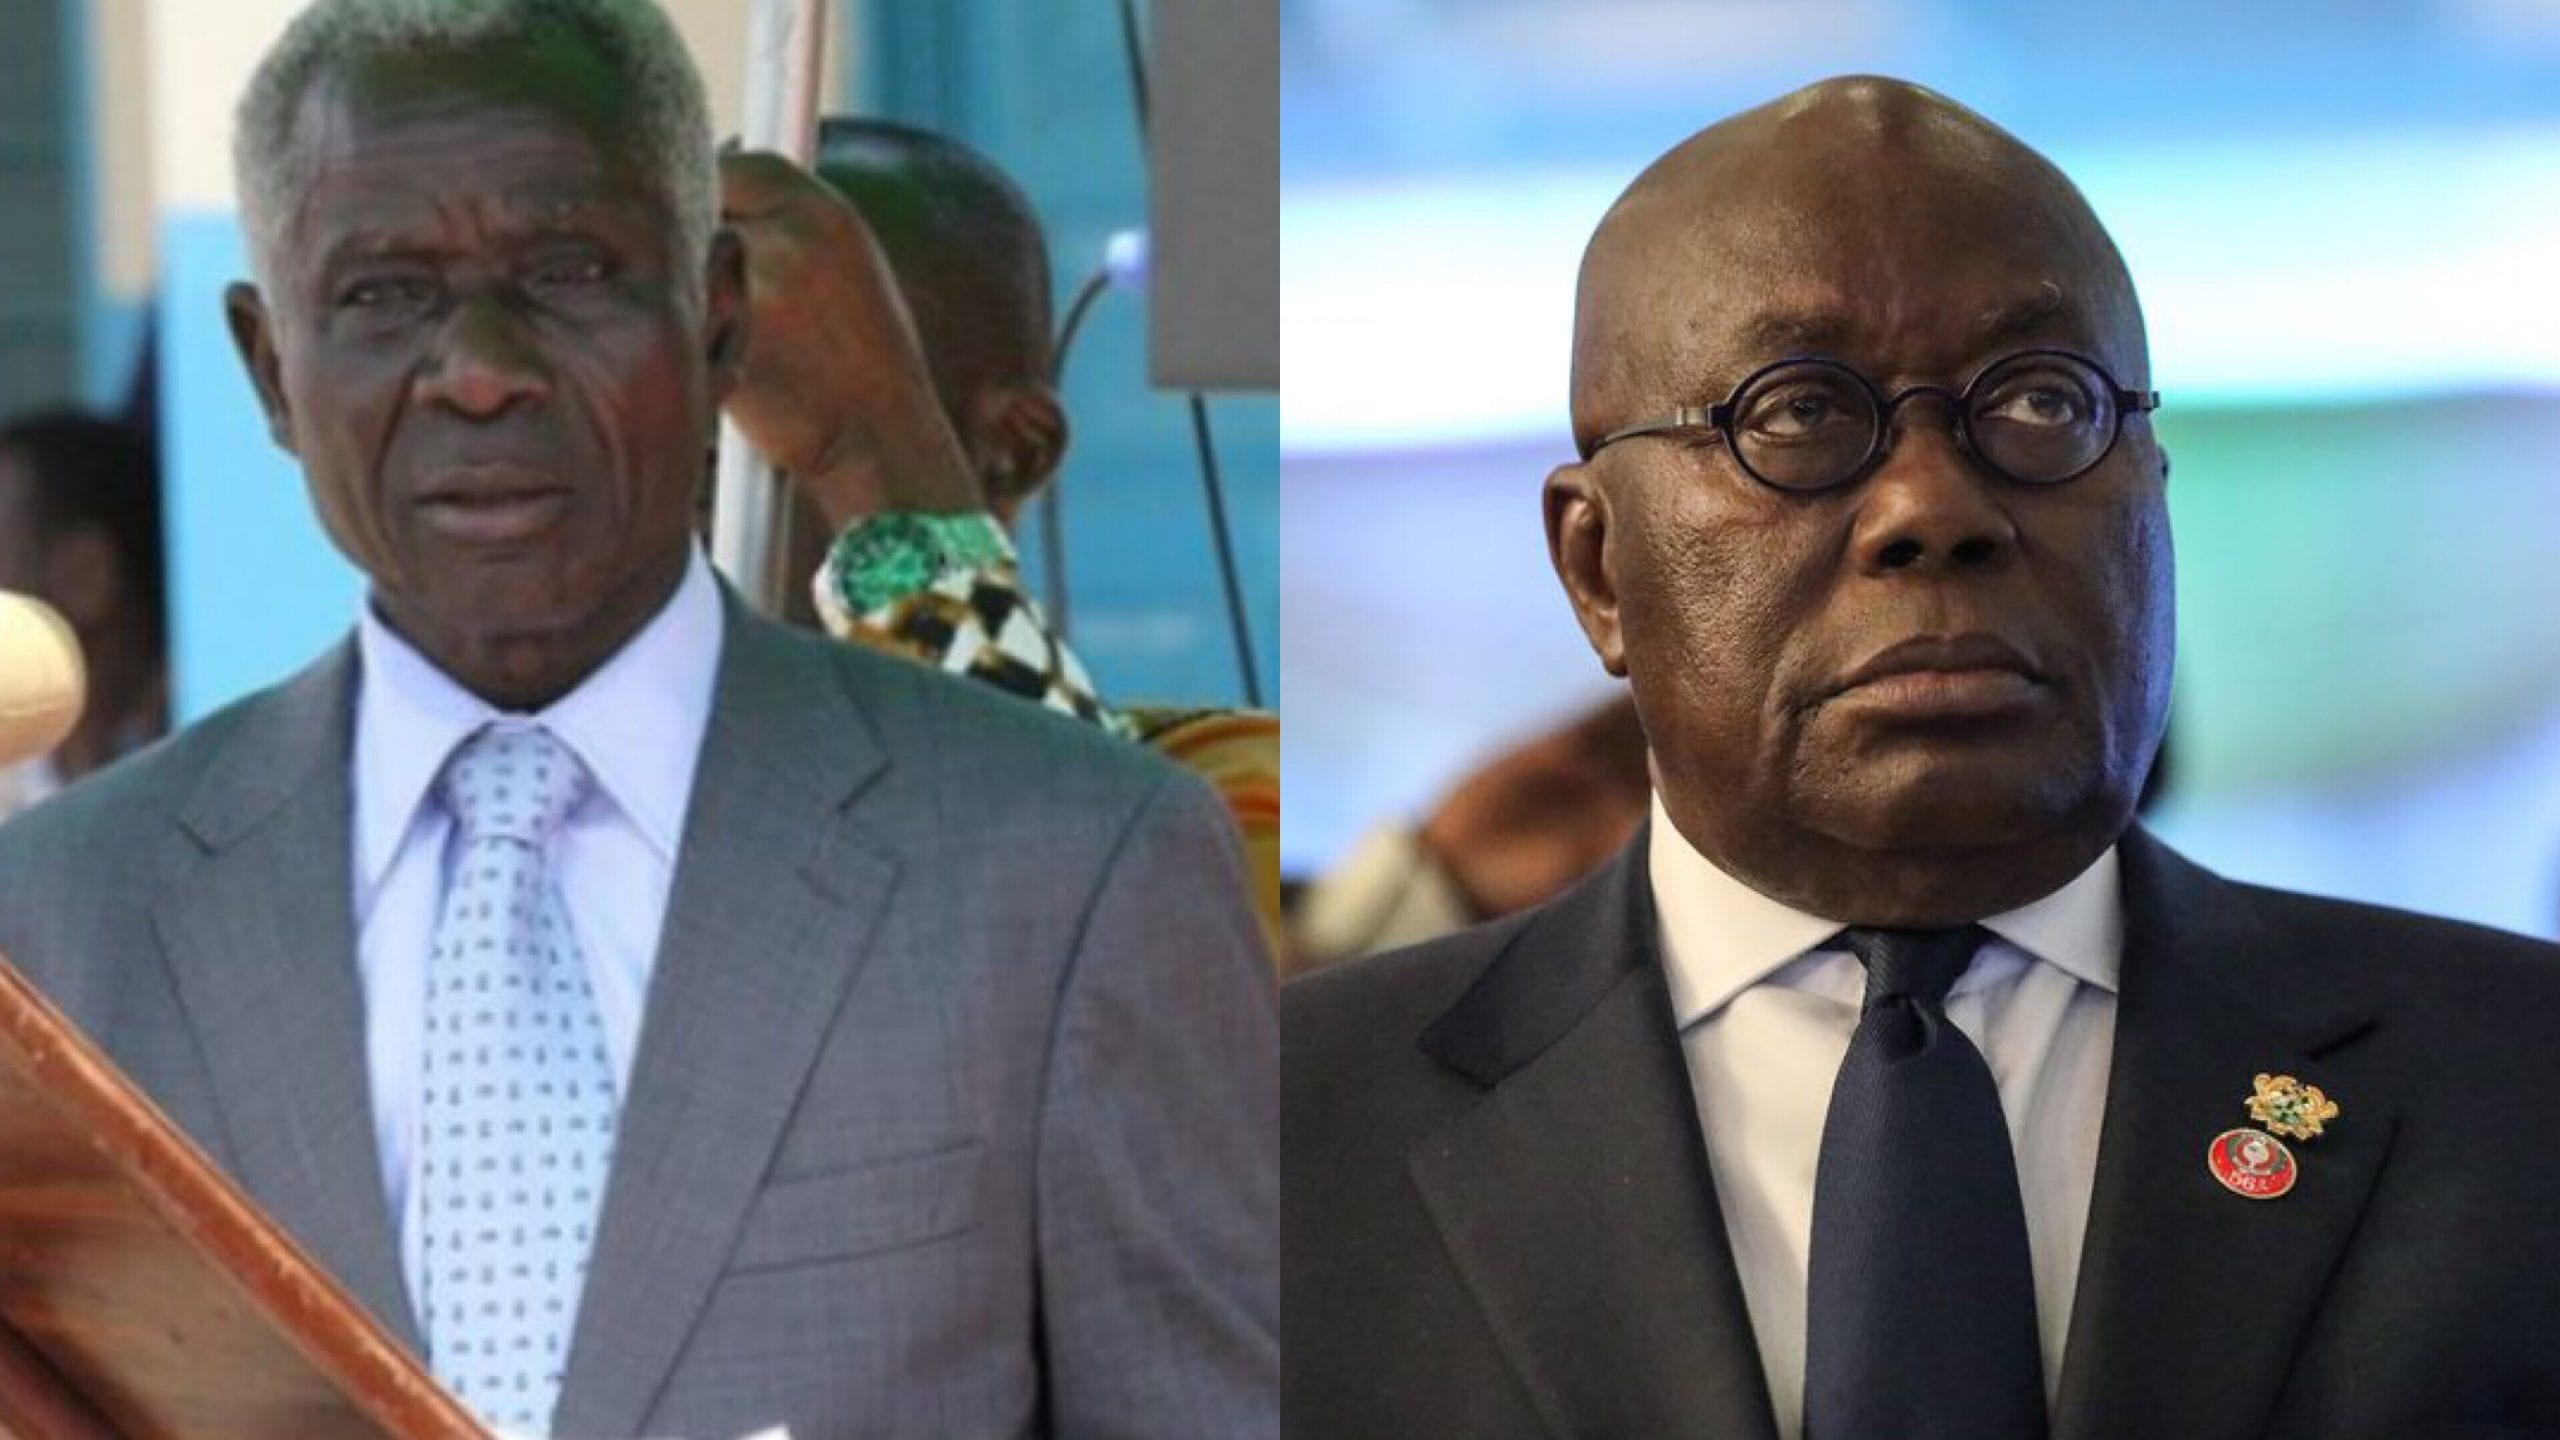 Ghana sliding into a state of anarchy under Akufo-Addo – Nunoo-Mensah